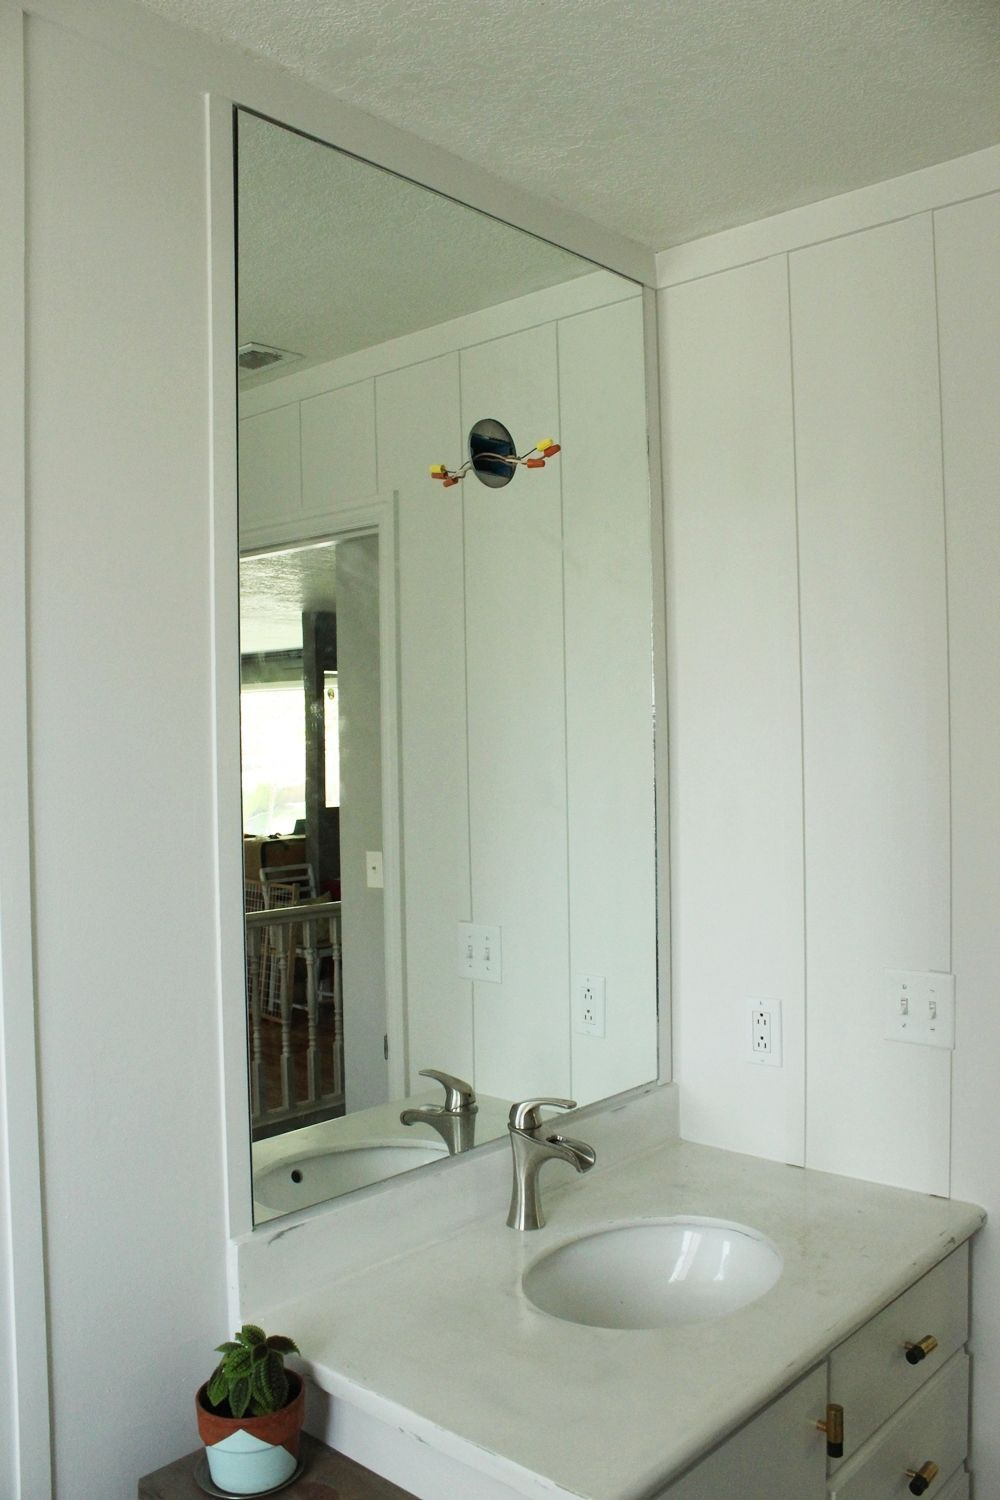 How to professionally install a bathroom mirror amipublicfo Gallery